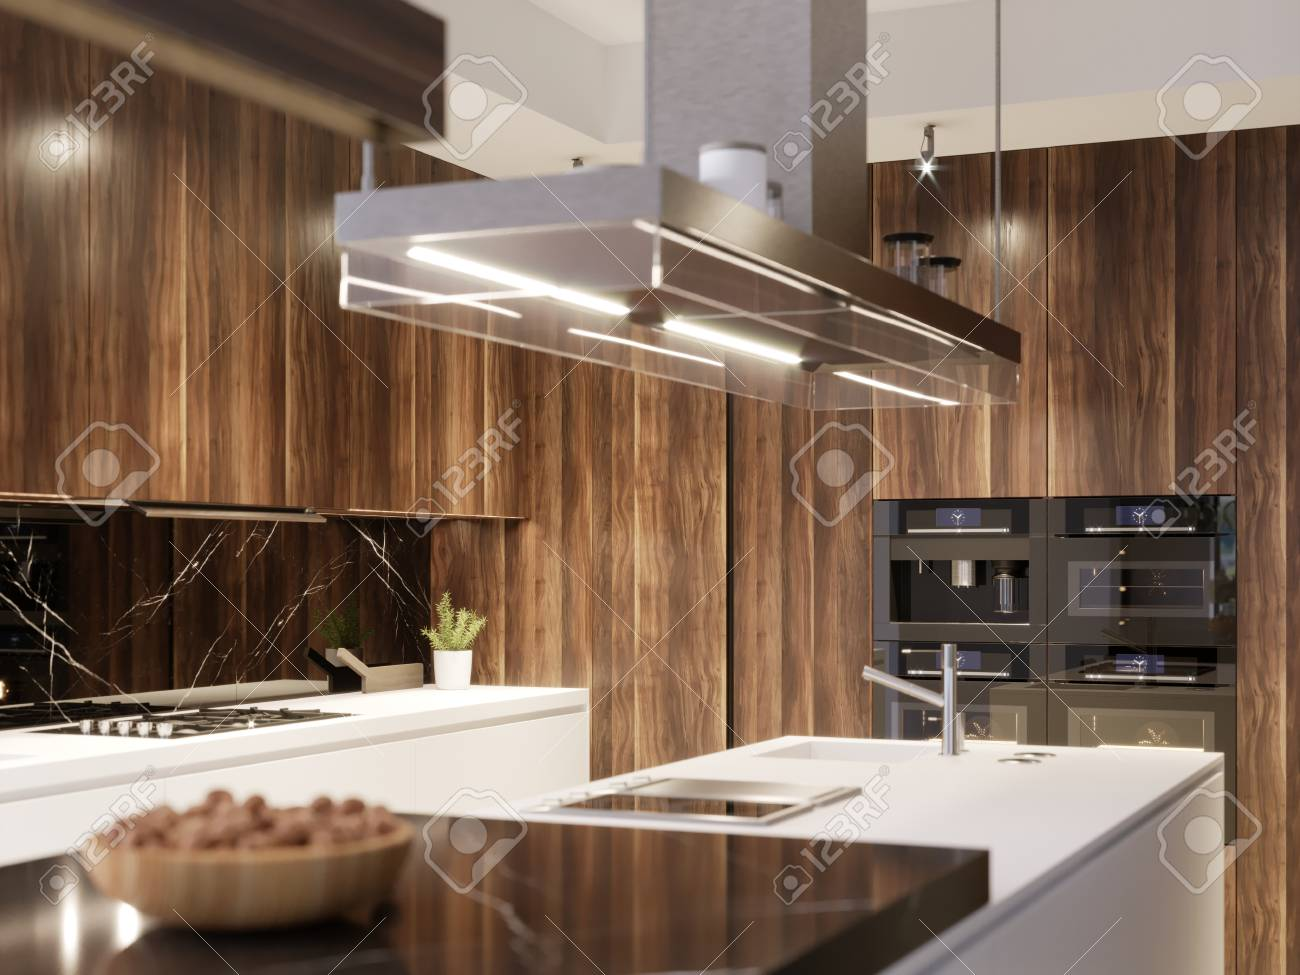 Kitchen Design Hood And Built In Kitchen Appliances In A Modern